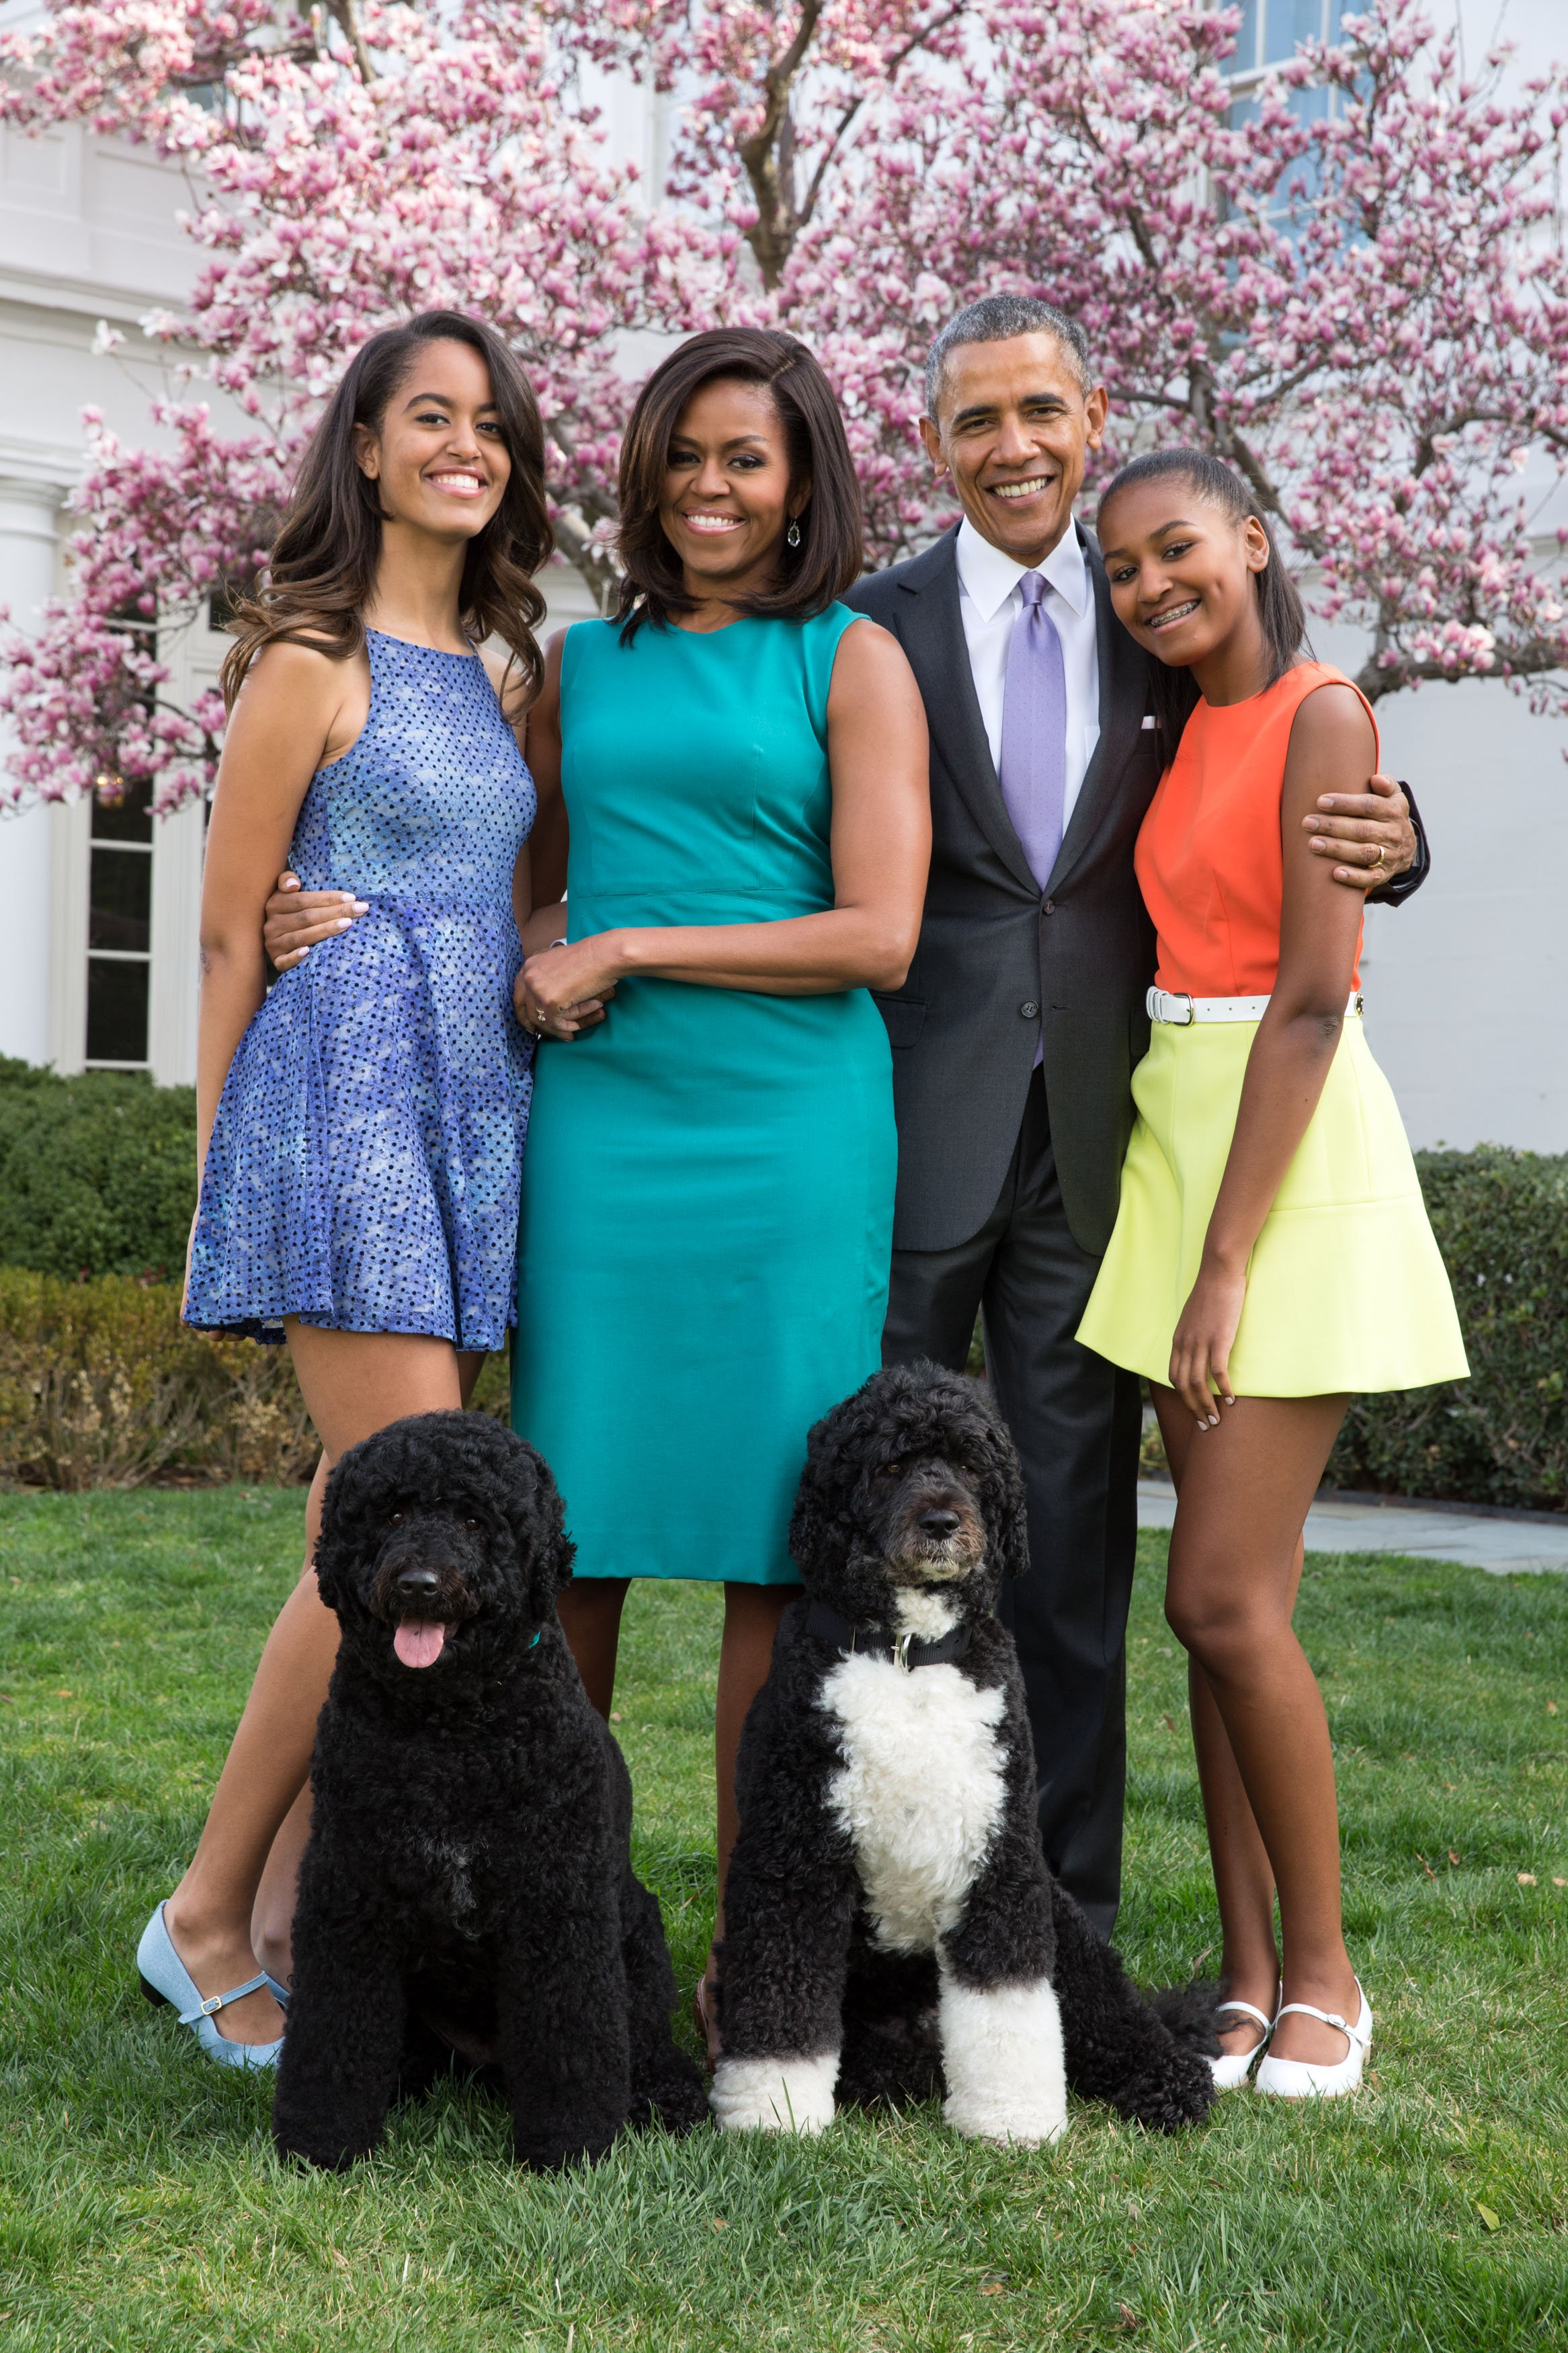 Former U.S. President Barack Obama, Michelle Obama with Malia and Sasha in the Rose Garden of the White House, in Washington, DC. | Source: Getty Images.